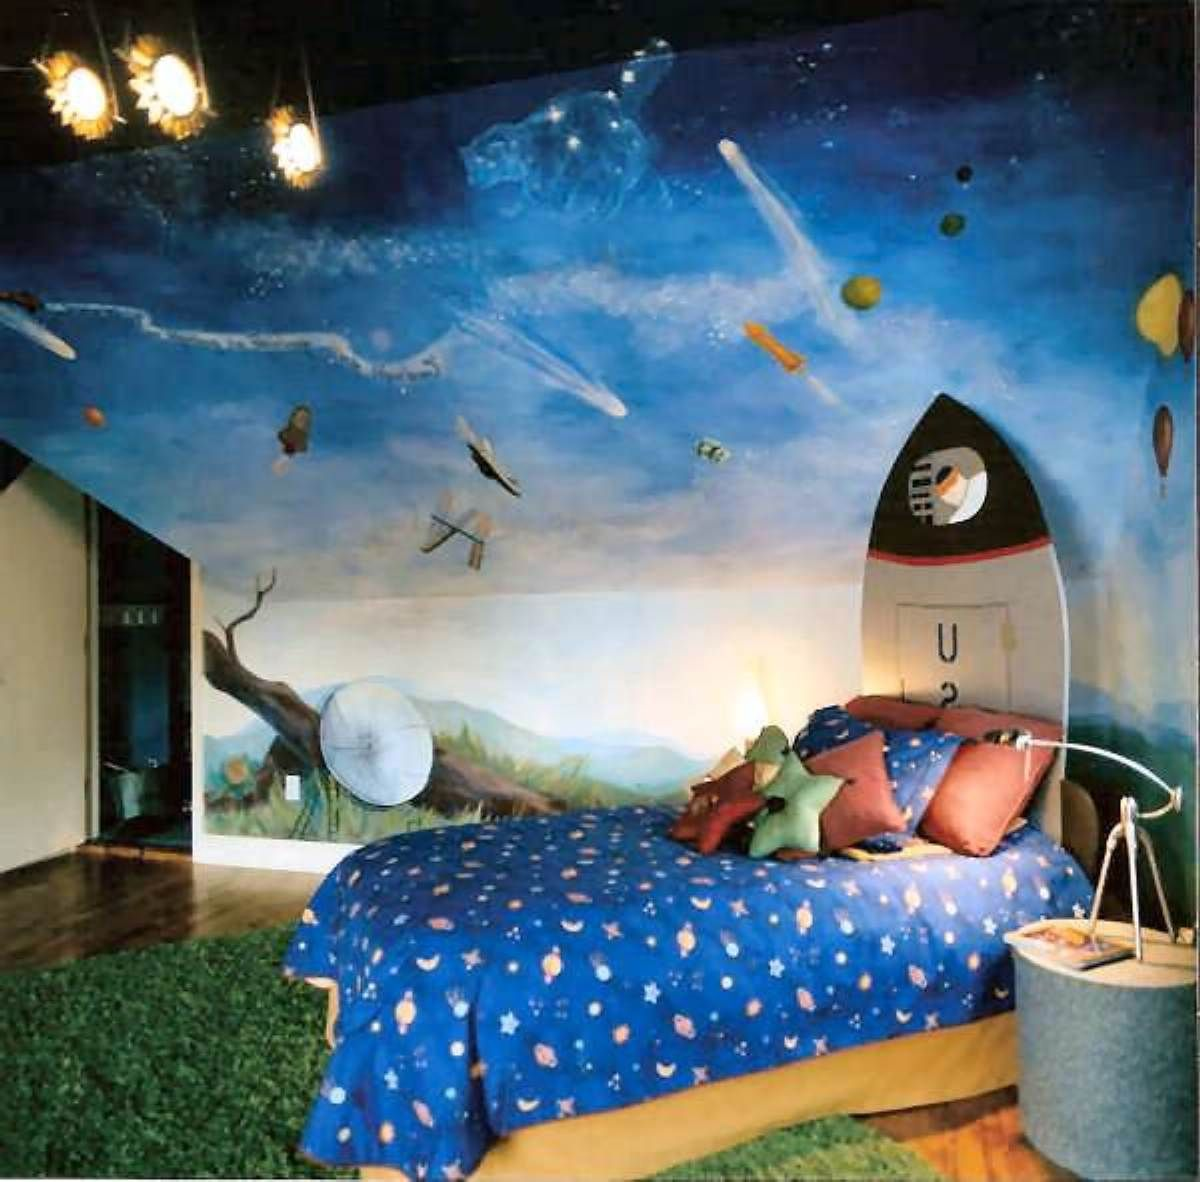 25 Marvelous Kids Rooms Ceiling Designs Ideas Raising Your Kids Properly Is The Most Essential Part Space Themed Bedroom Bedroom Themes Space Themed Room